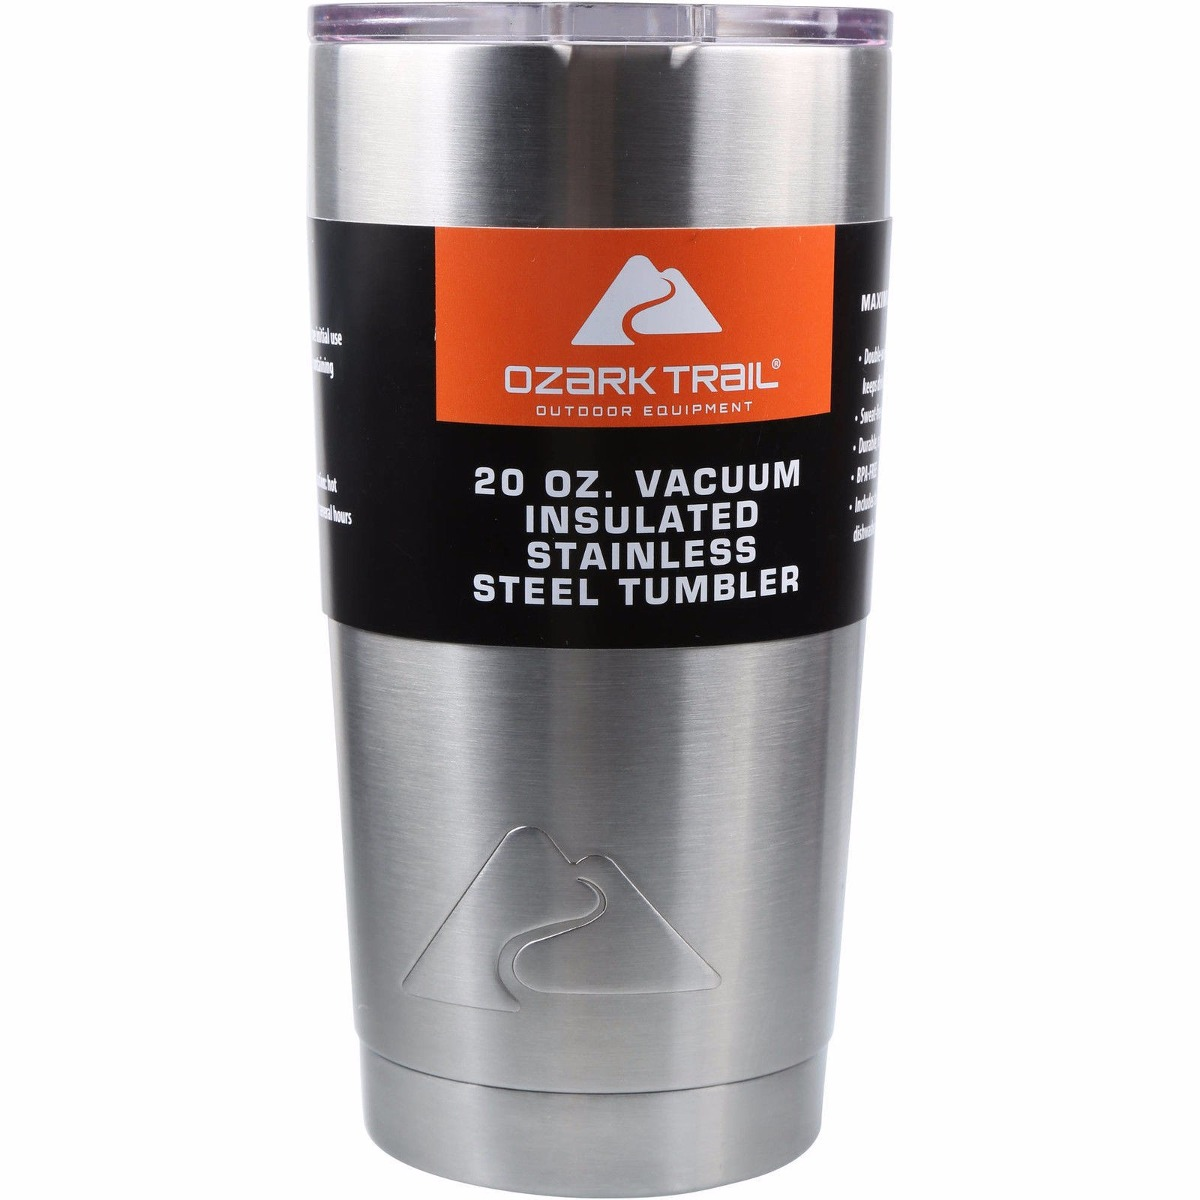 Vaso Termino Ozark Trail 20 Oz 591 Ml Mantiene Frio